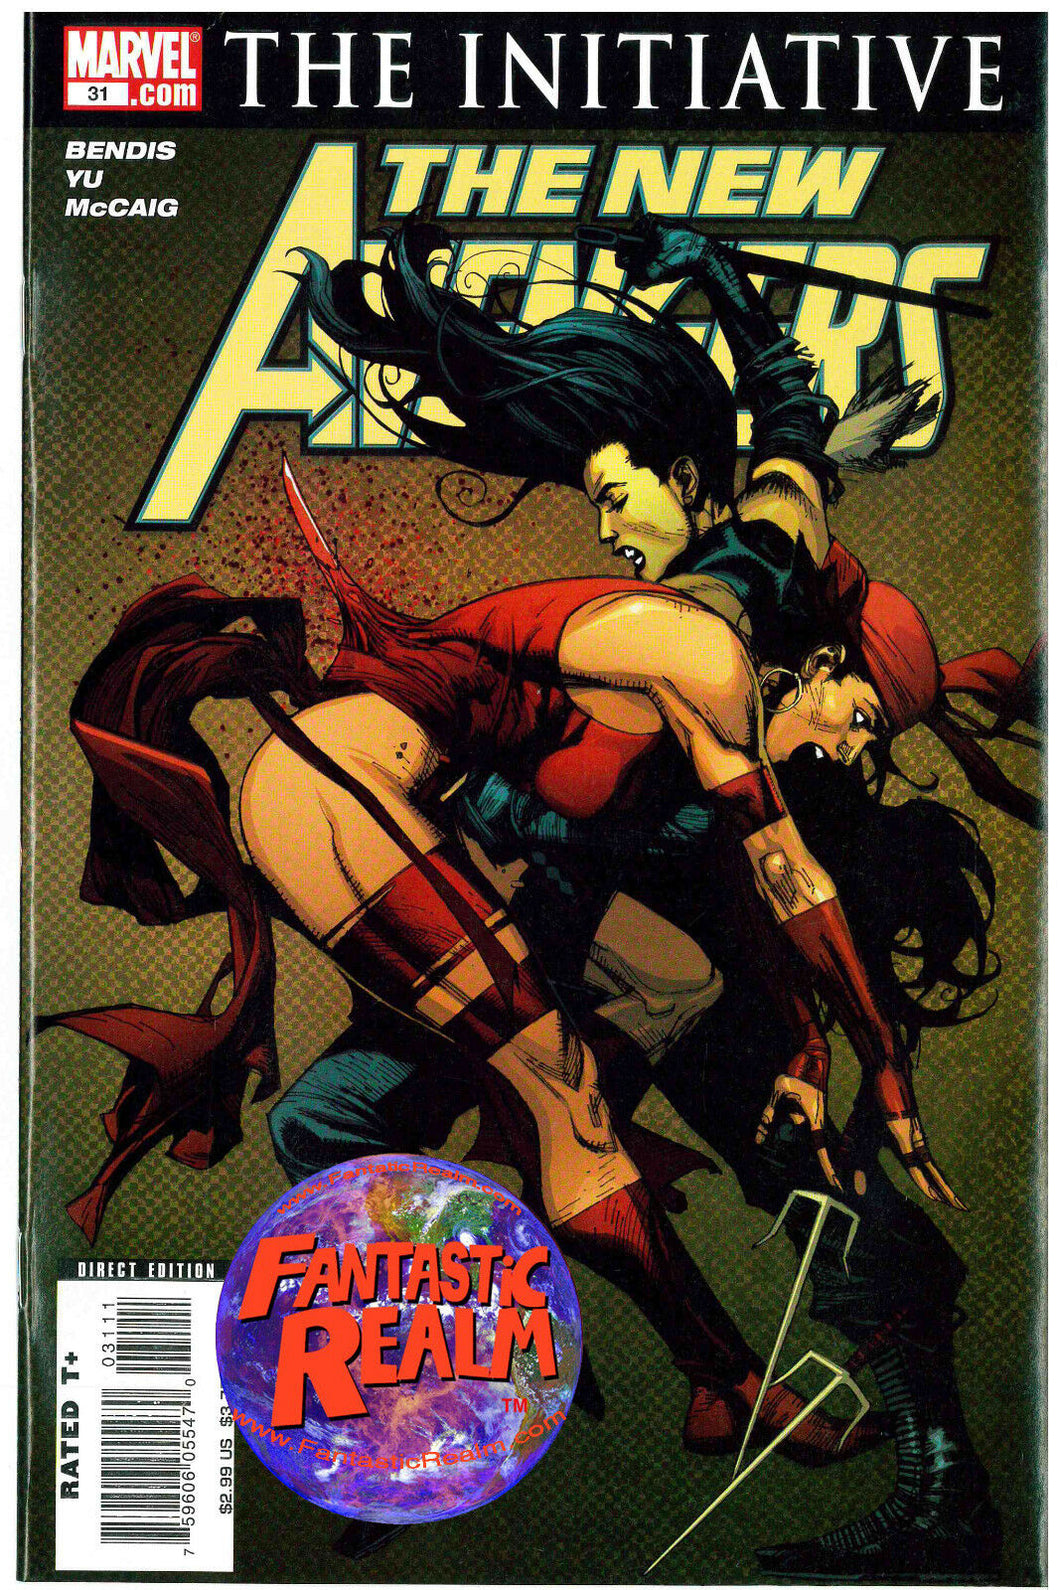 THE NEW AVENGERS (THE INITIATIVE) #35 BENDIS MARVEL COMICS